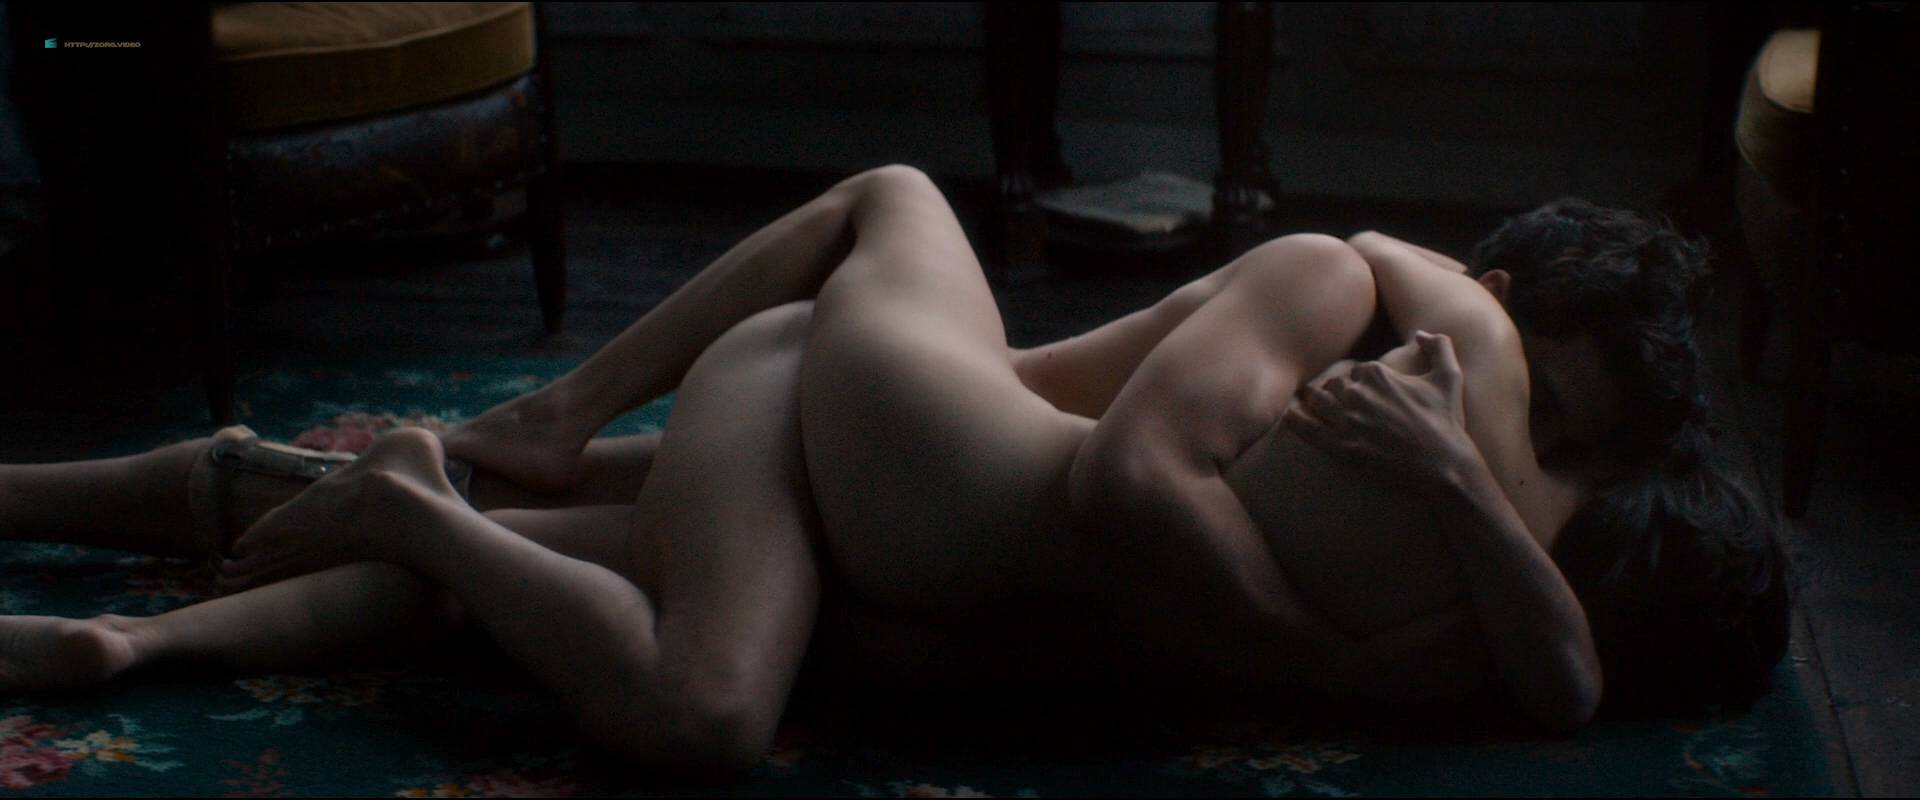 image Marion cotillard explicit sex scenes big boobs la boite noire 2005